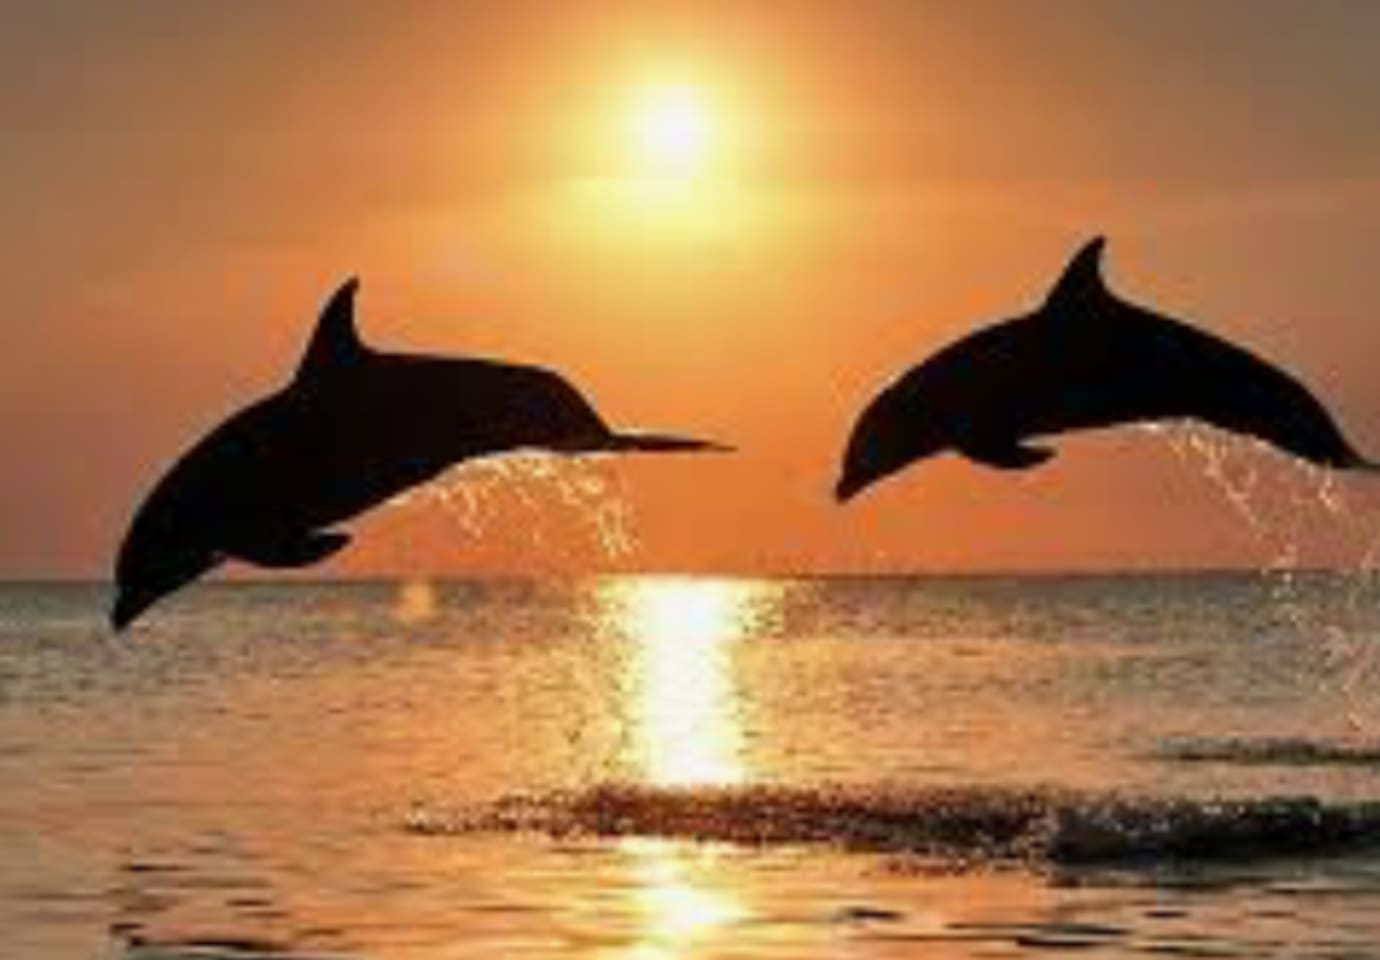 One free Dolphin tour ticket for each night booked. Book 3 nights - get 3 free tickets worth a total of $150